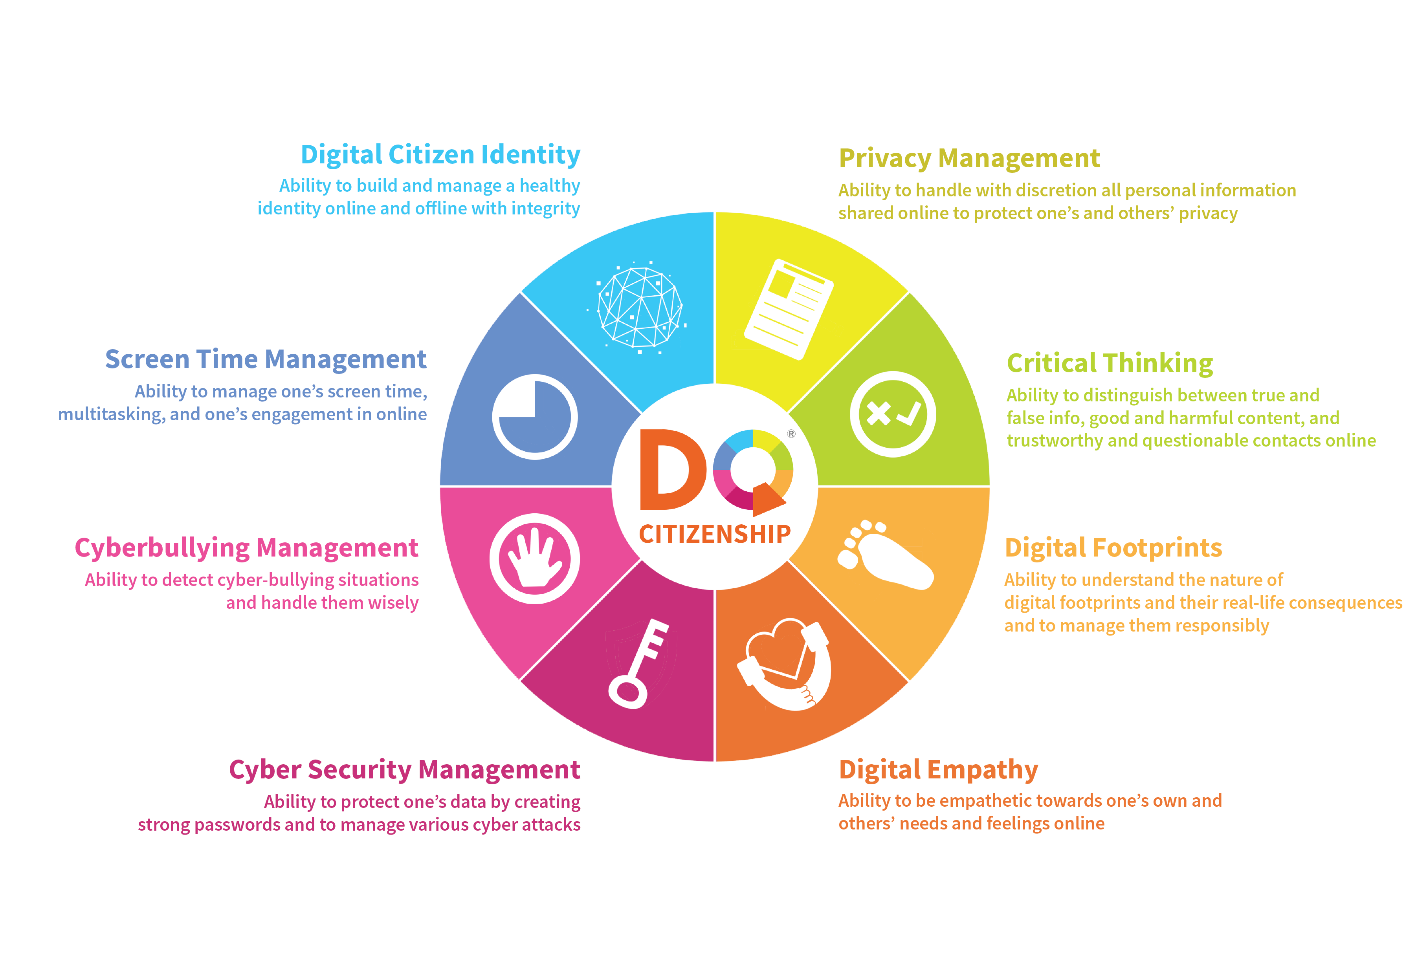 Digital citizen identity: the ability to build and manage a healthy  identity online and offline with integrity